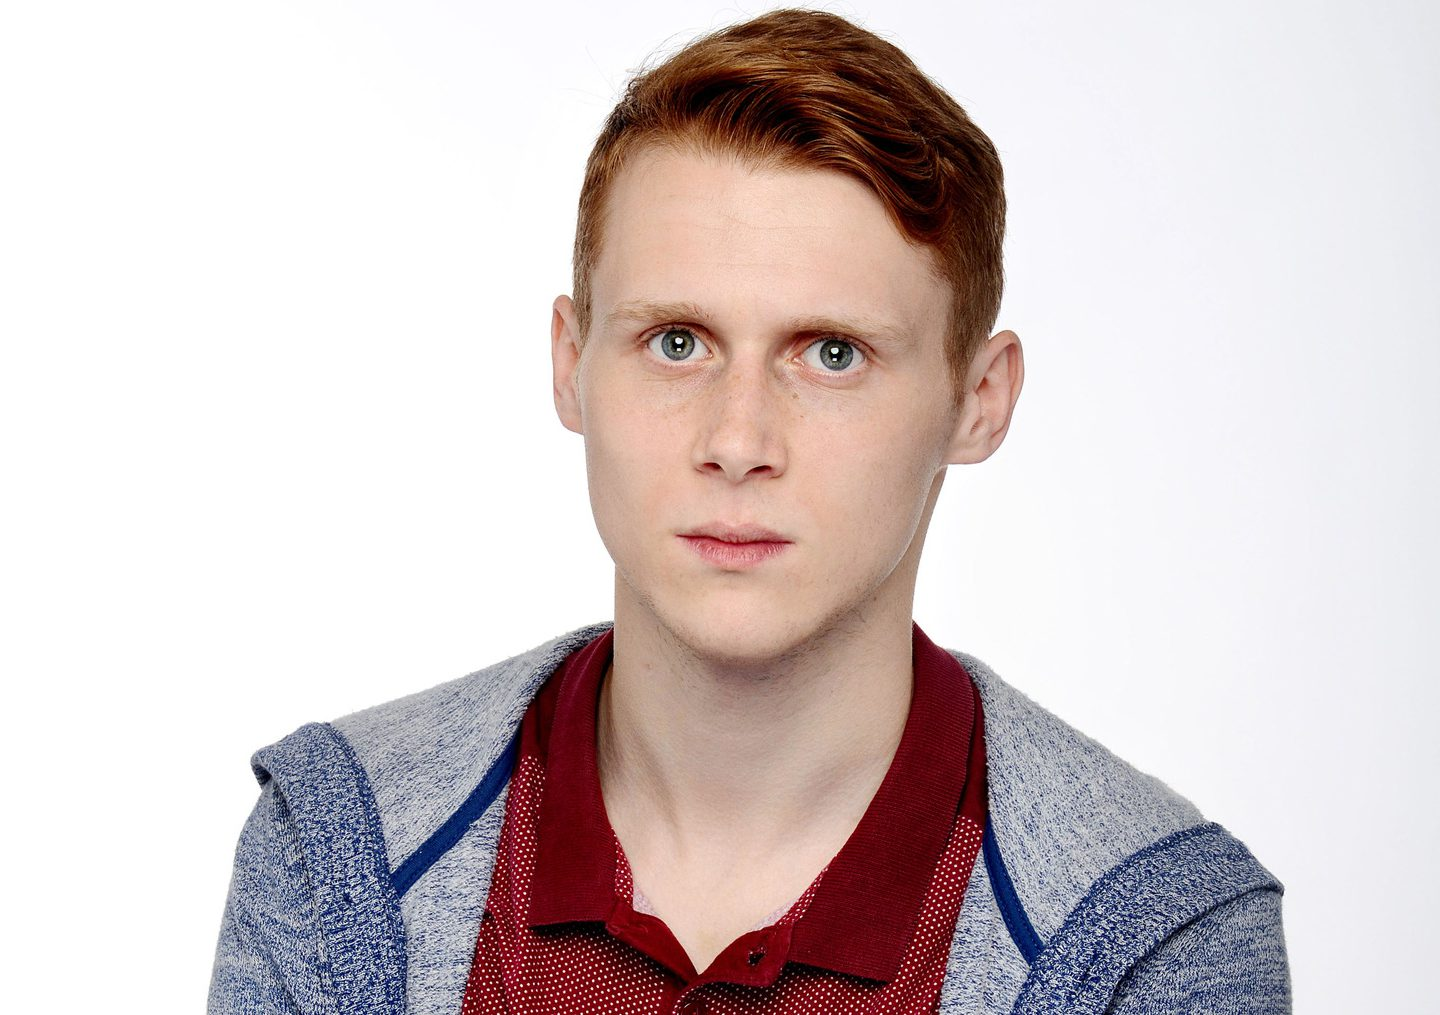 WARNING: Embargoed for publication until 00:00:01 on 05/08/2014 - Programme Name: EastEnders - TX: n/a - Episode: 4905 (No. n/a) - Picture Shows: Jay Mitchell.  Jay Mitchell (JAMIE BORTHWICK) - (C) BBC - Photographer: Kieron McCarron